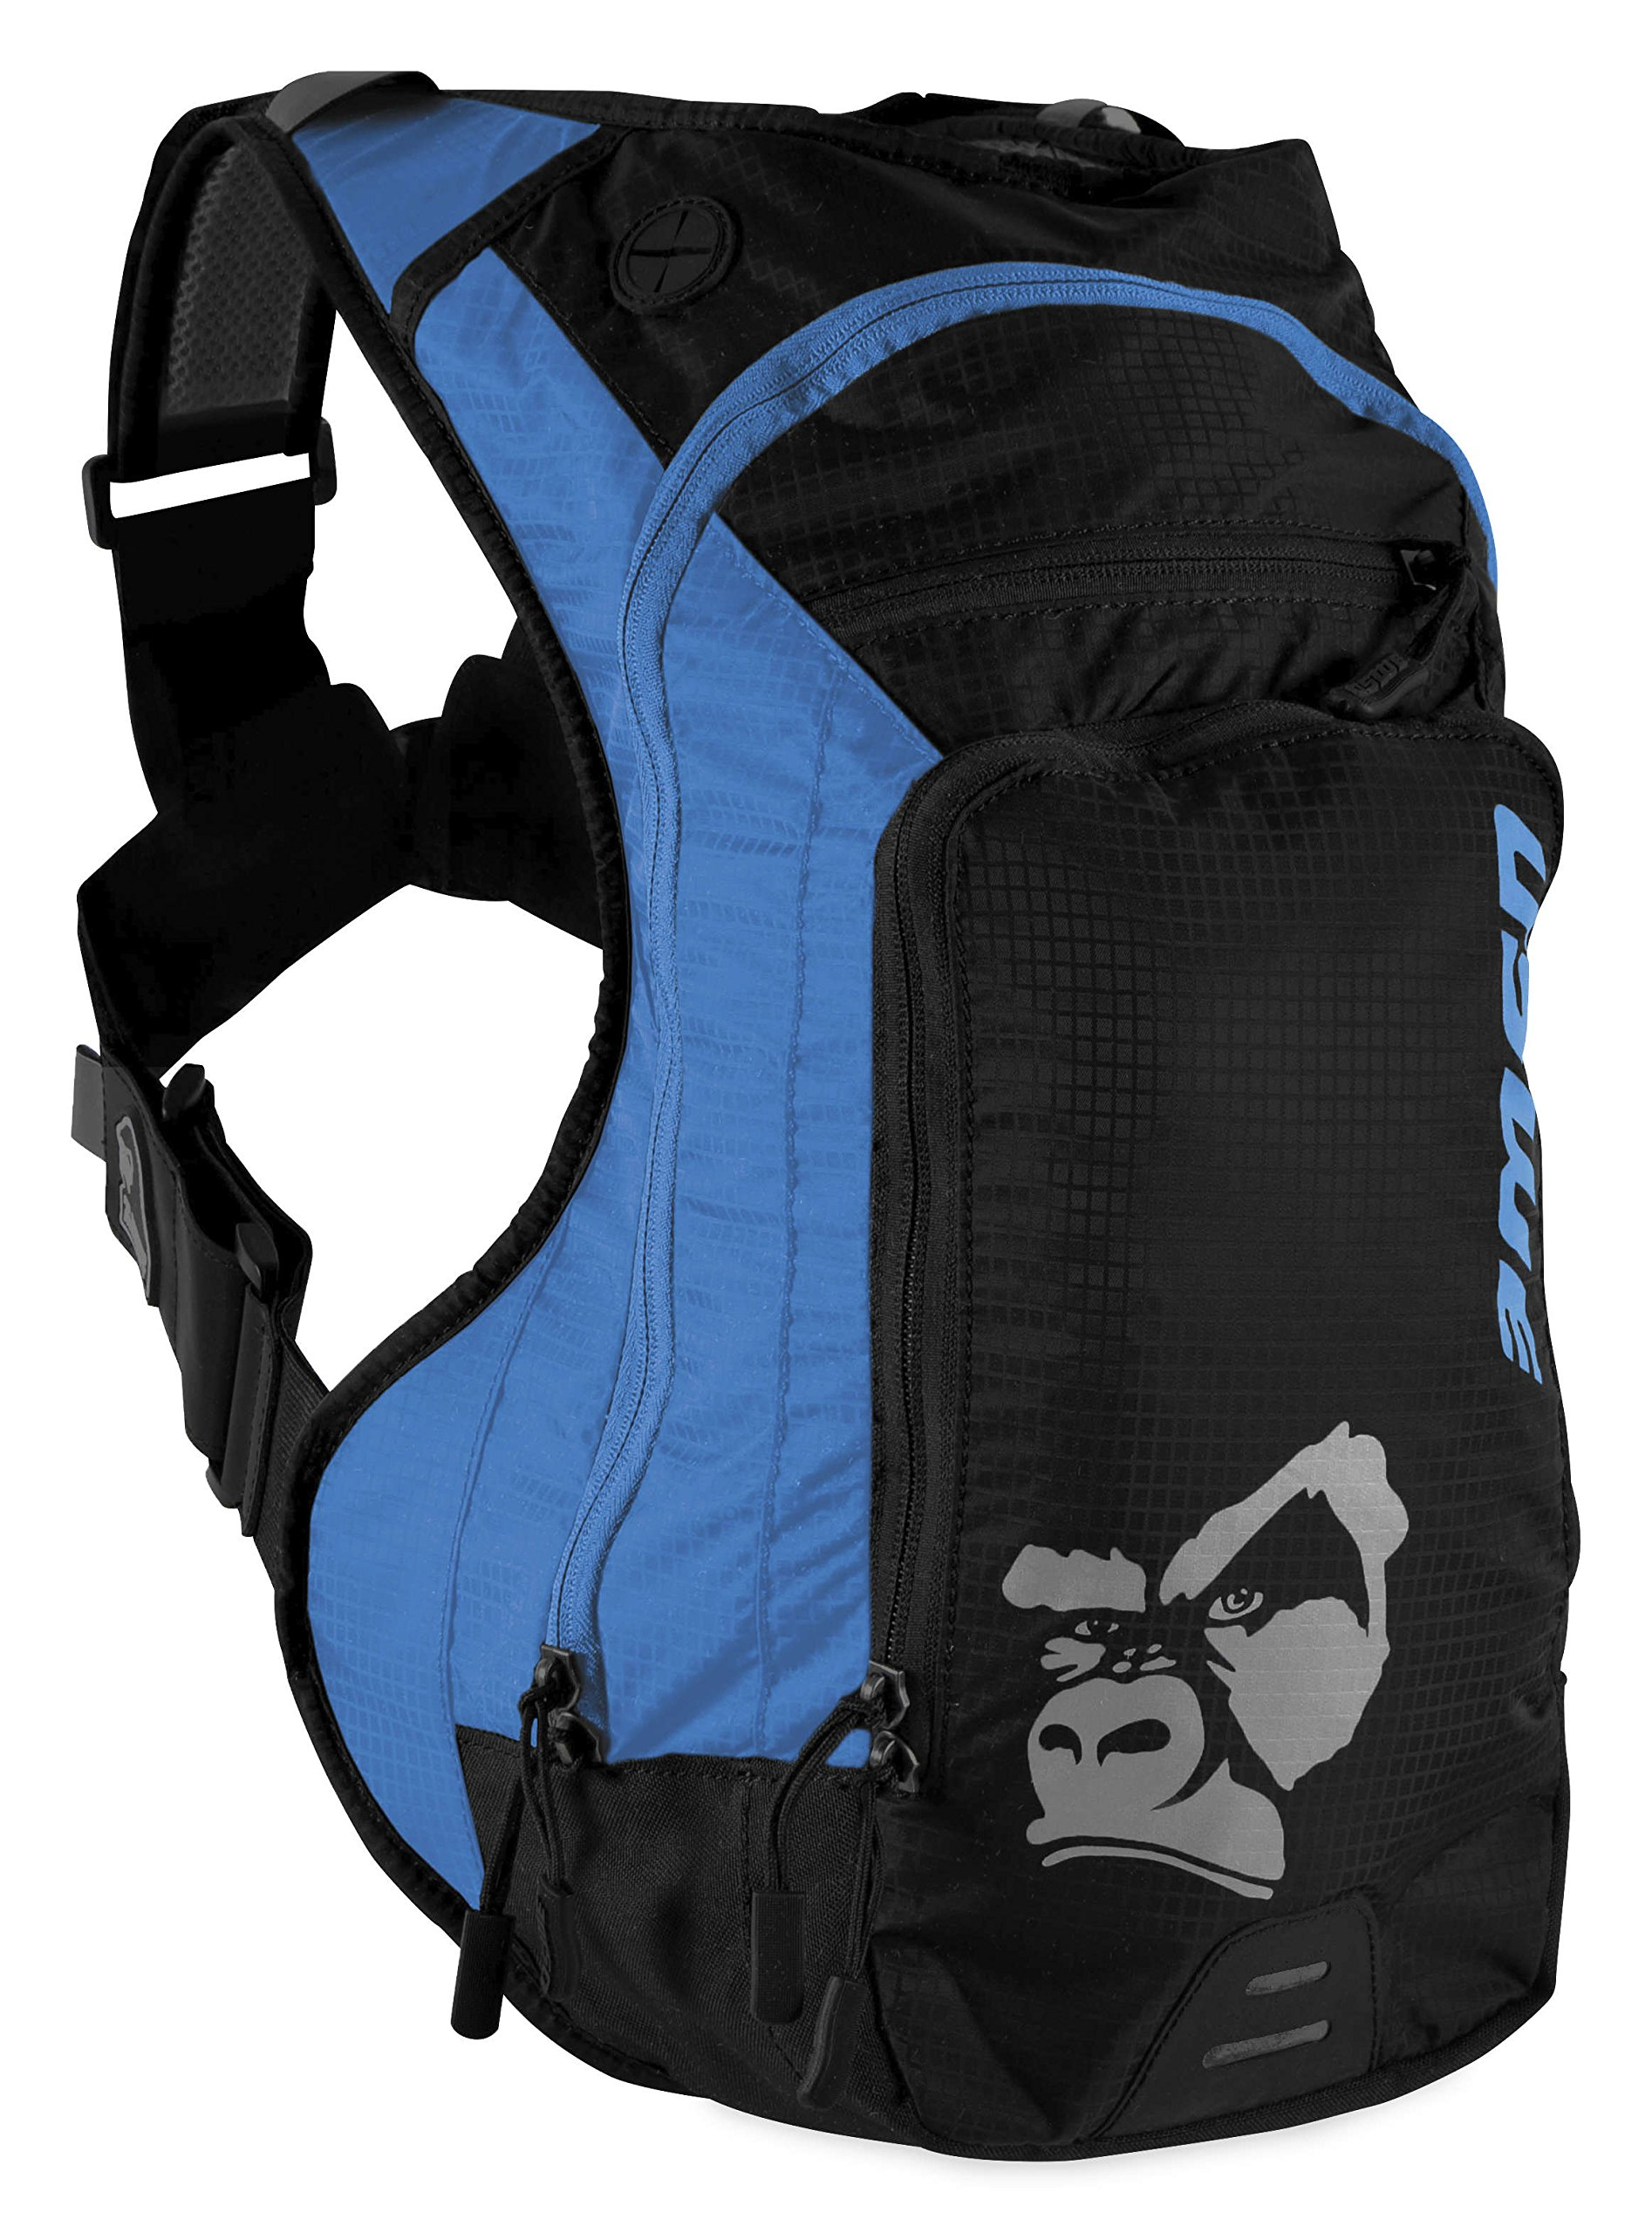 Uswe Blue-Black Ranger - 9 Litre Hydration Pack (Default , Blue) by USWE